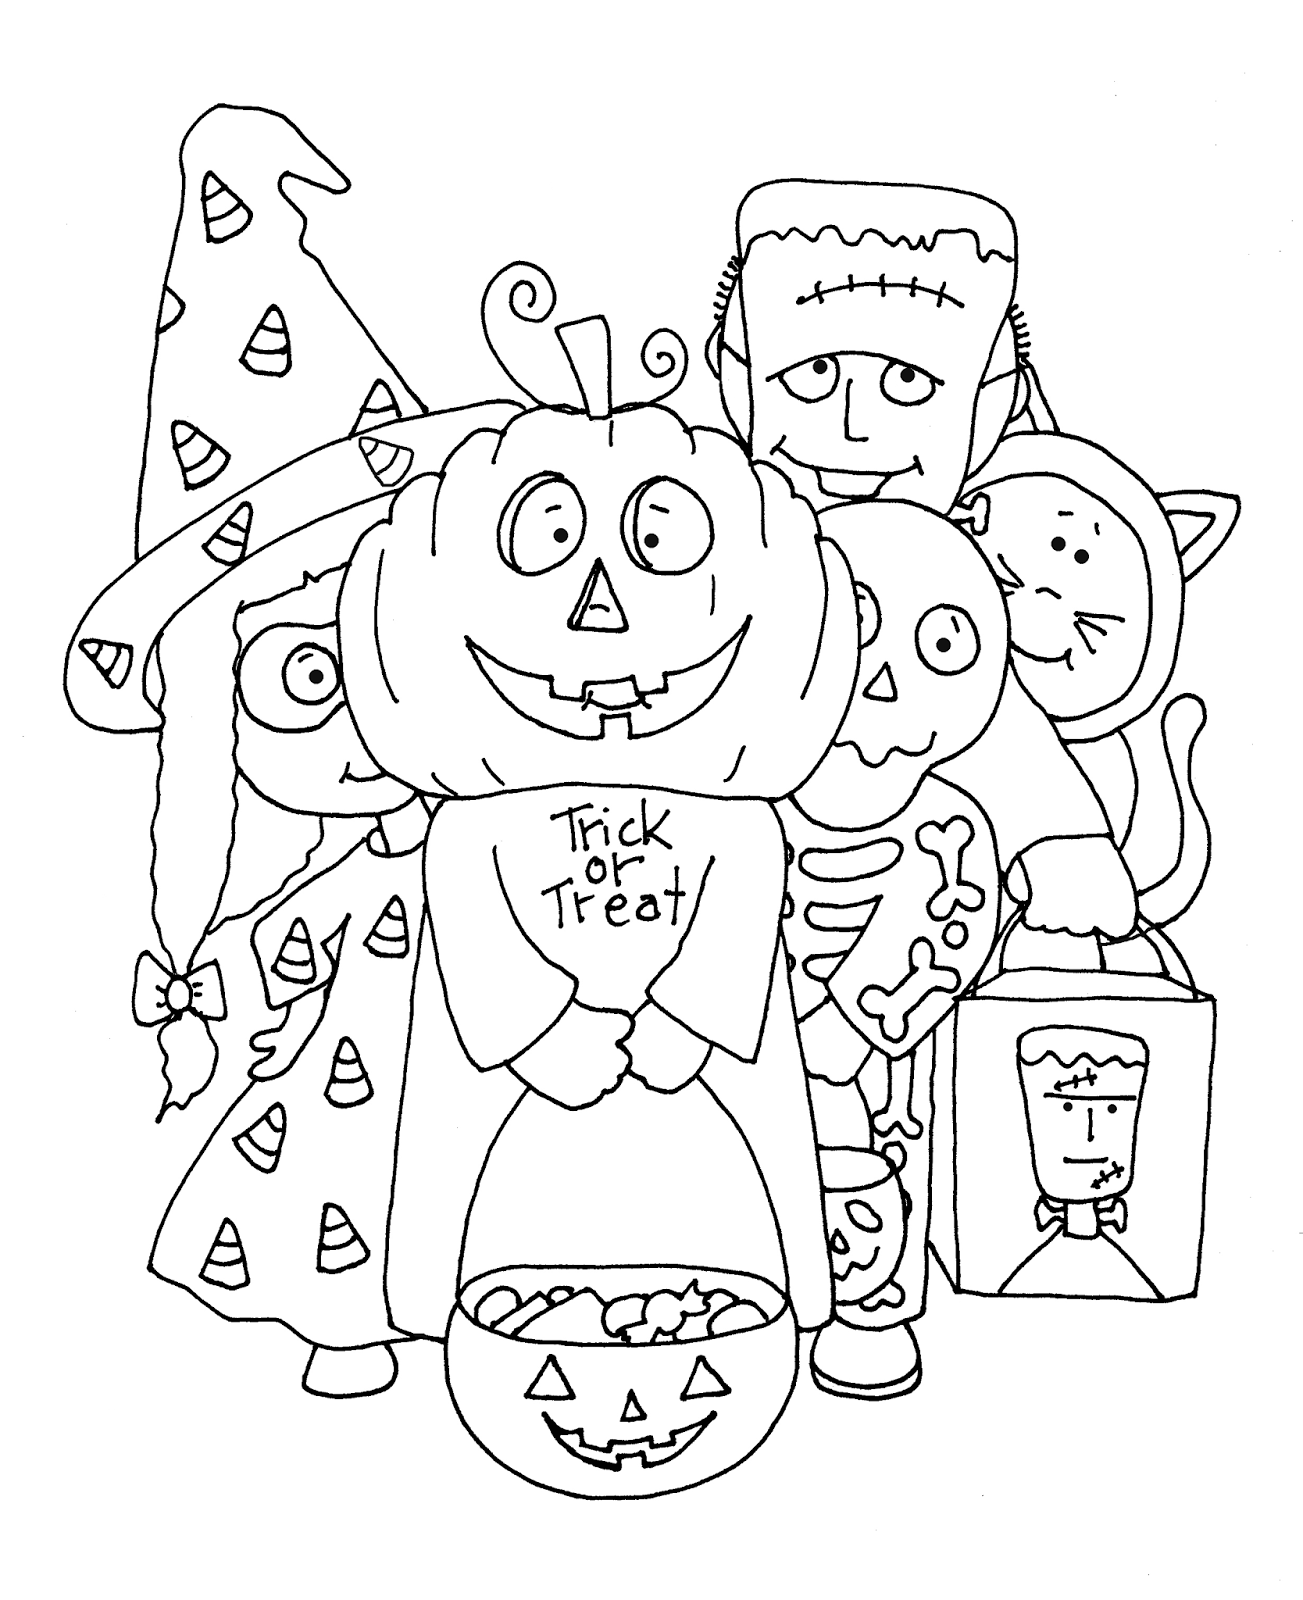 Free Dearie Dolls Digi Stamps: Trick or Treaters